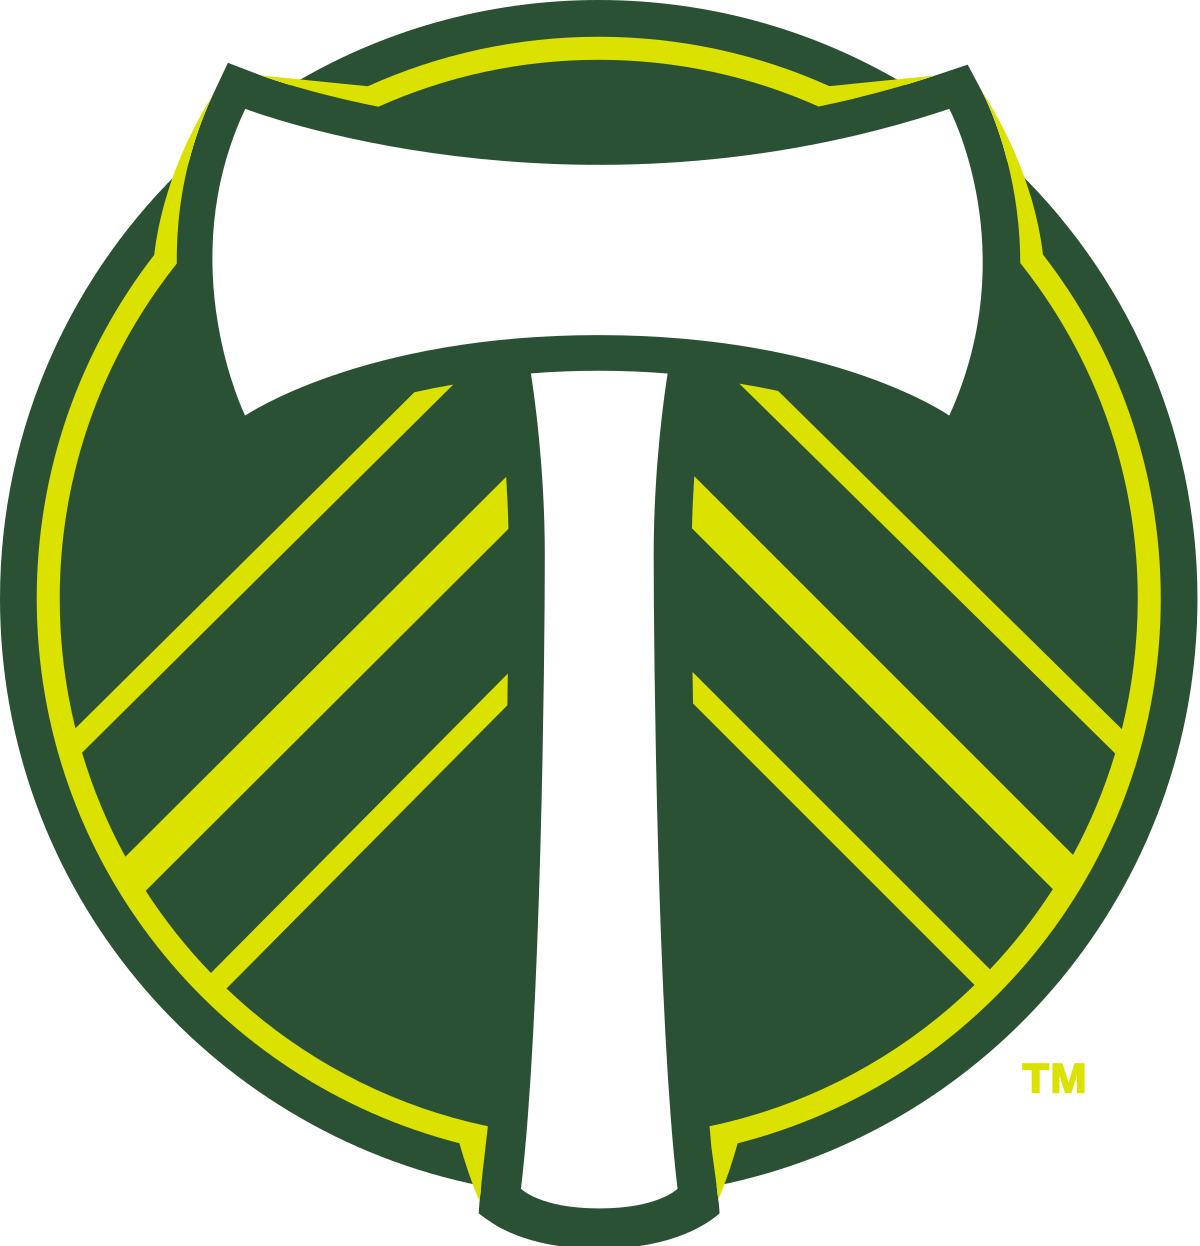 Logs clipart timber. Portland timbers vs sporting